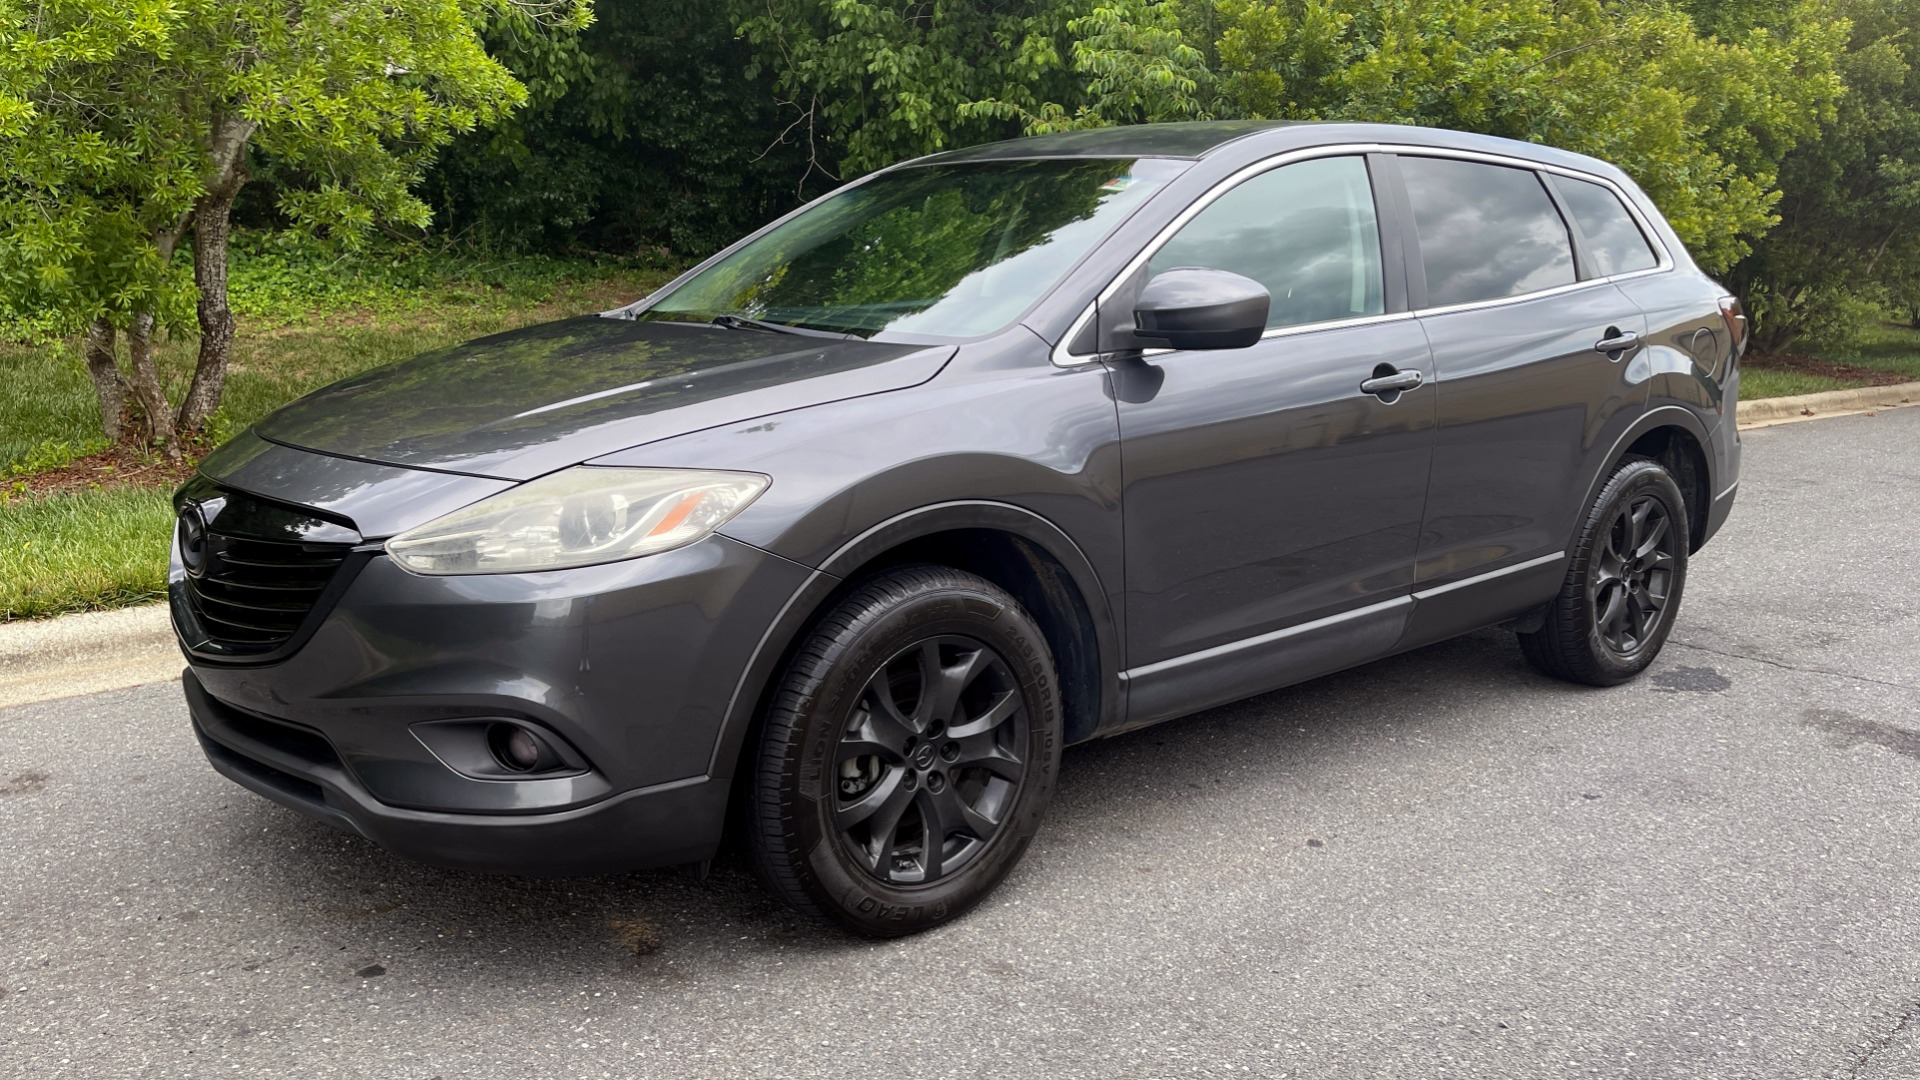 Used 2014 Mazda CX-9 TOURUNG / FWD / 3.7L V6 / 6-SPD AUTO / HTD STS / 3-ROW / REARVIEW for sale $14,995 at Formula Imports in Charlotte NC 28227 1